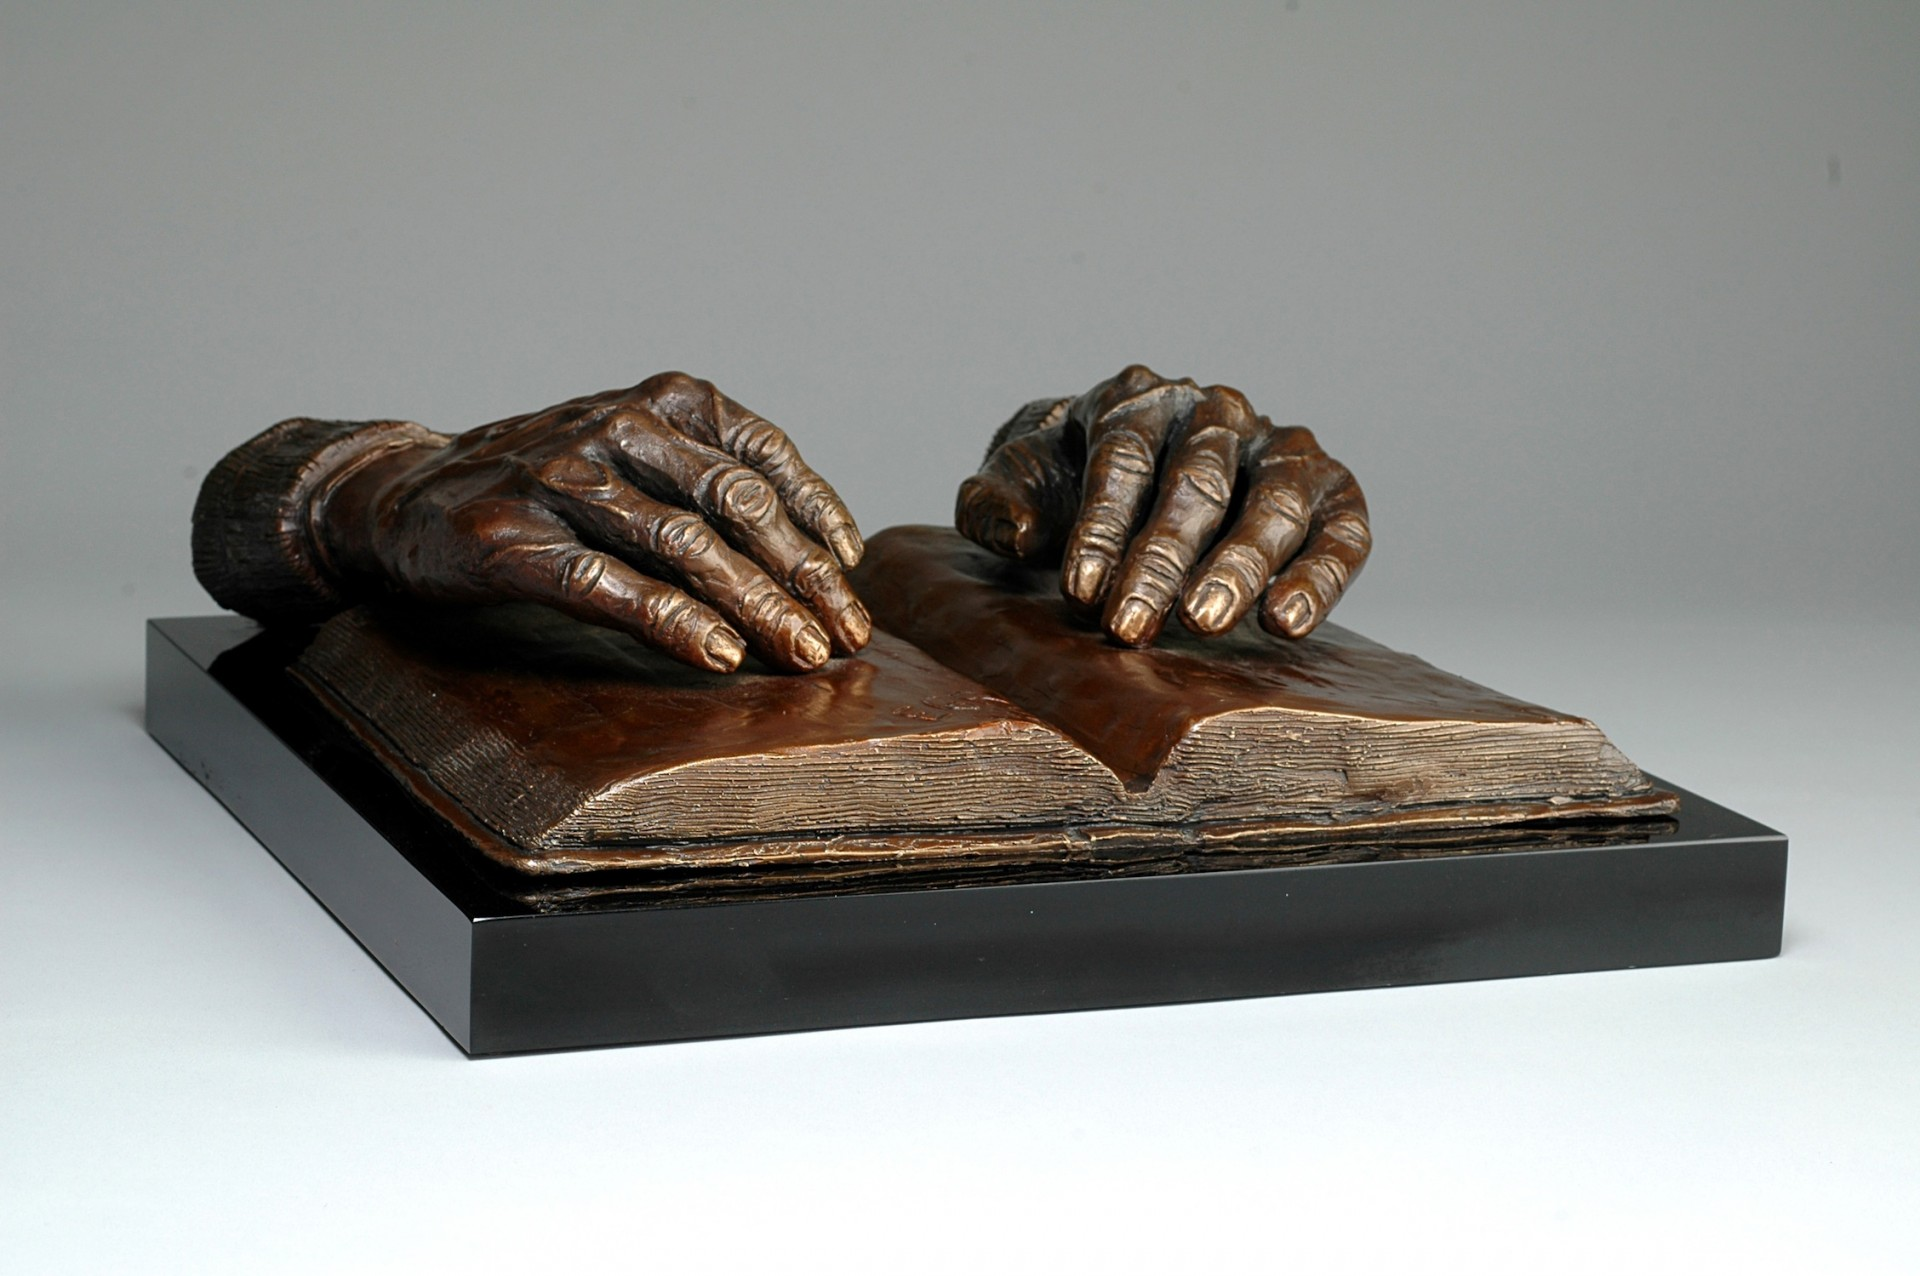 """Faith"" Chapel of Divine Providence Usaquén, Bogotá,D.E., Colombia, South America Cast Bronze - 5"" x 13¼"" x 13"""